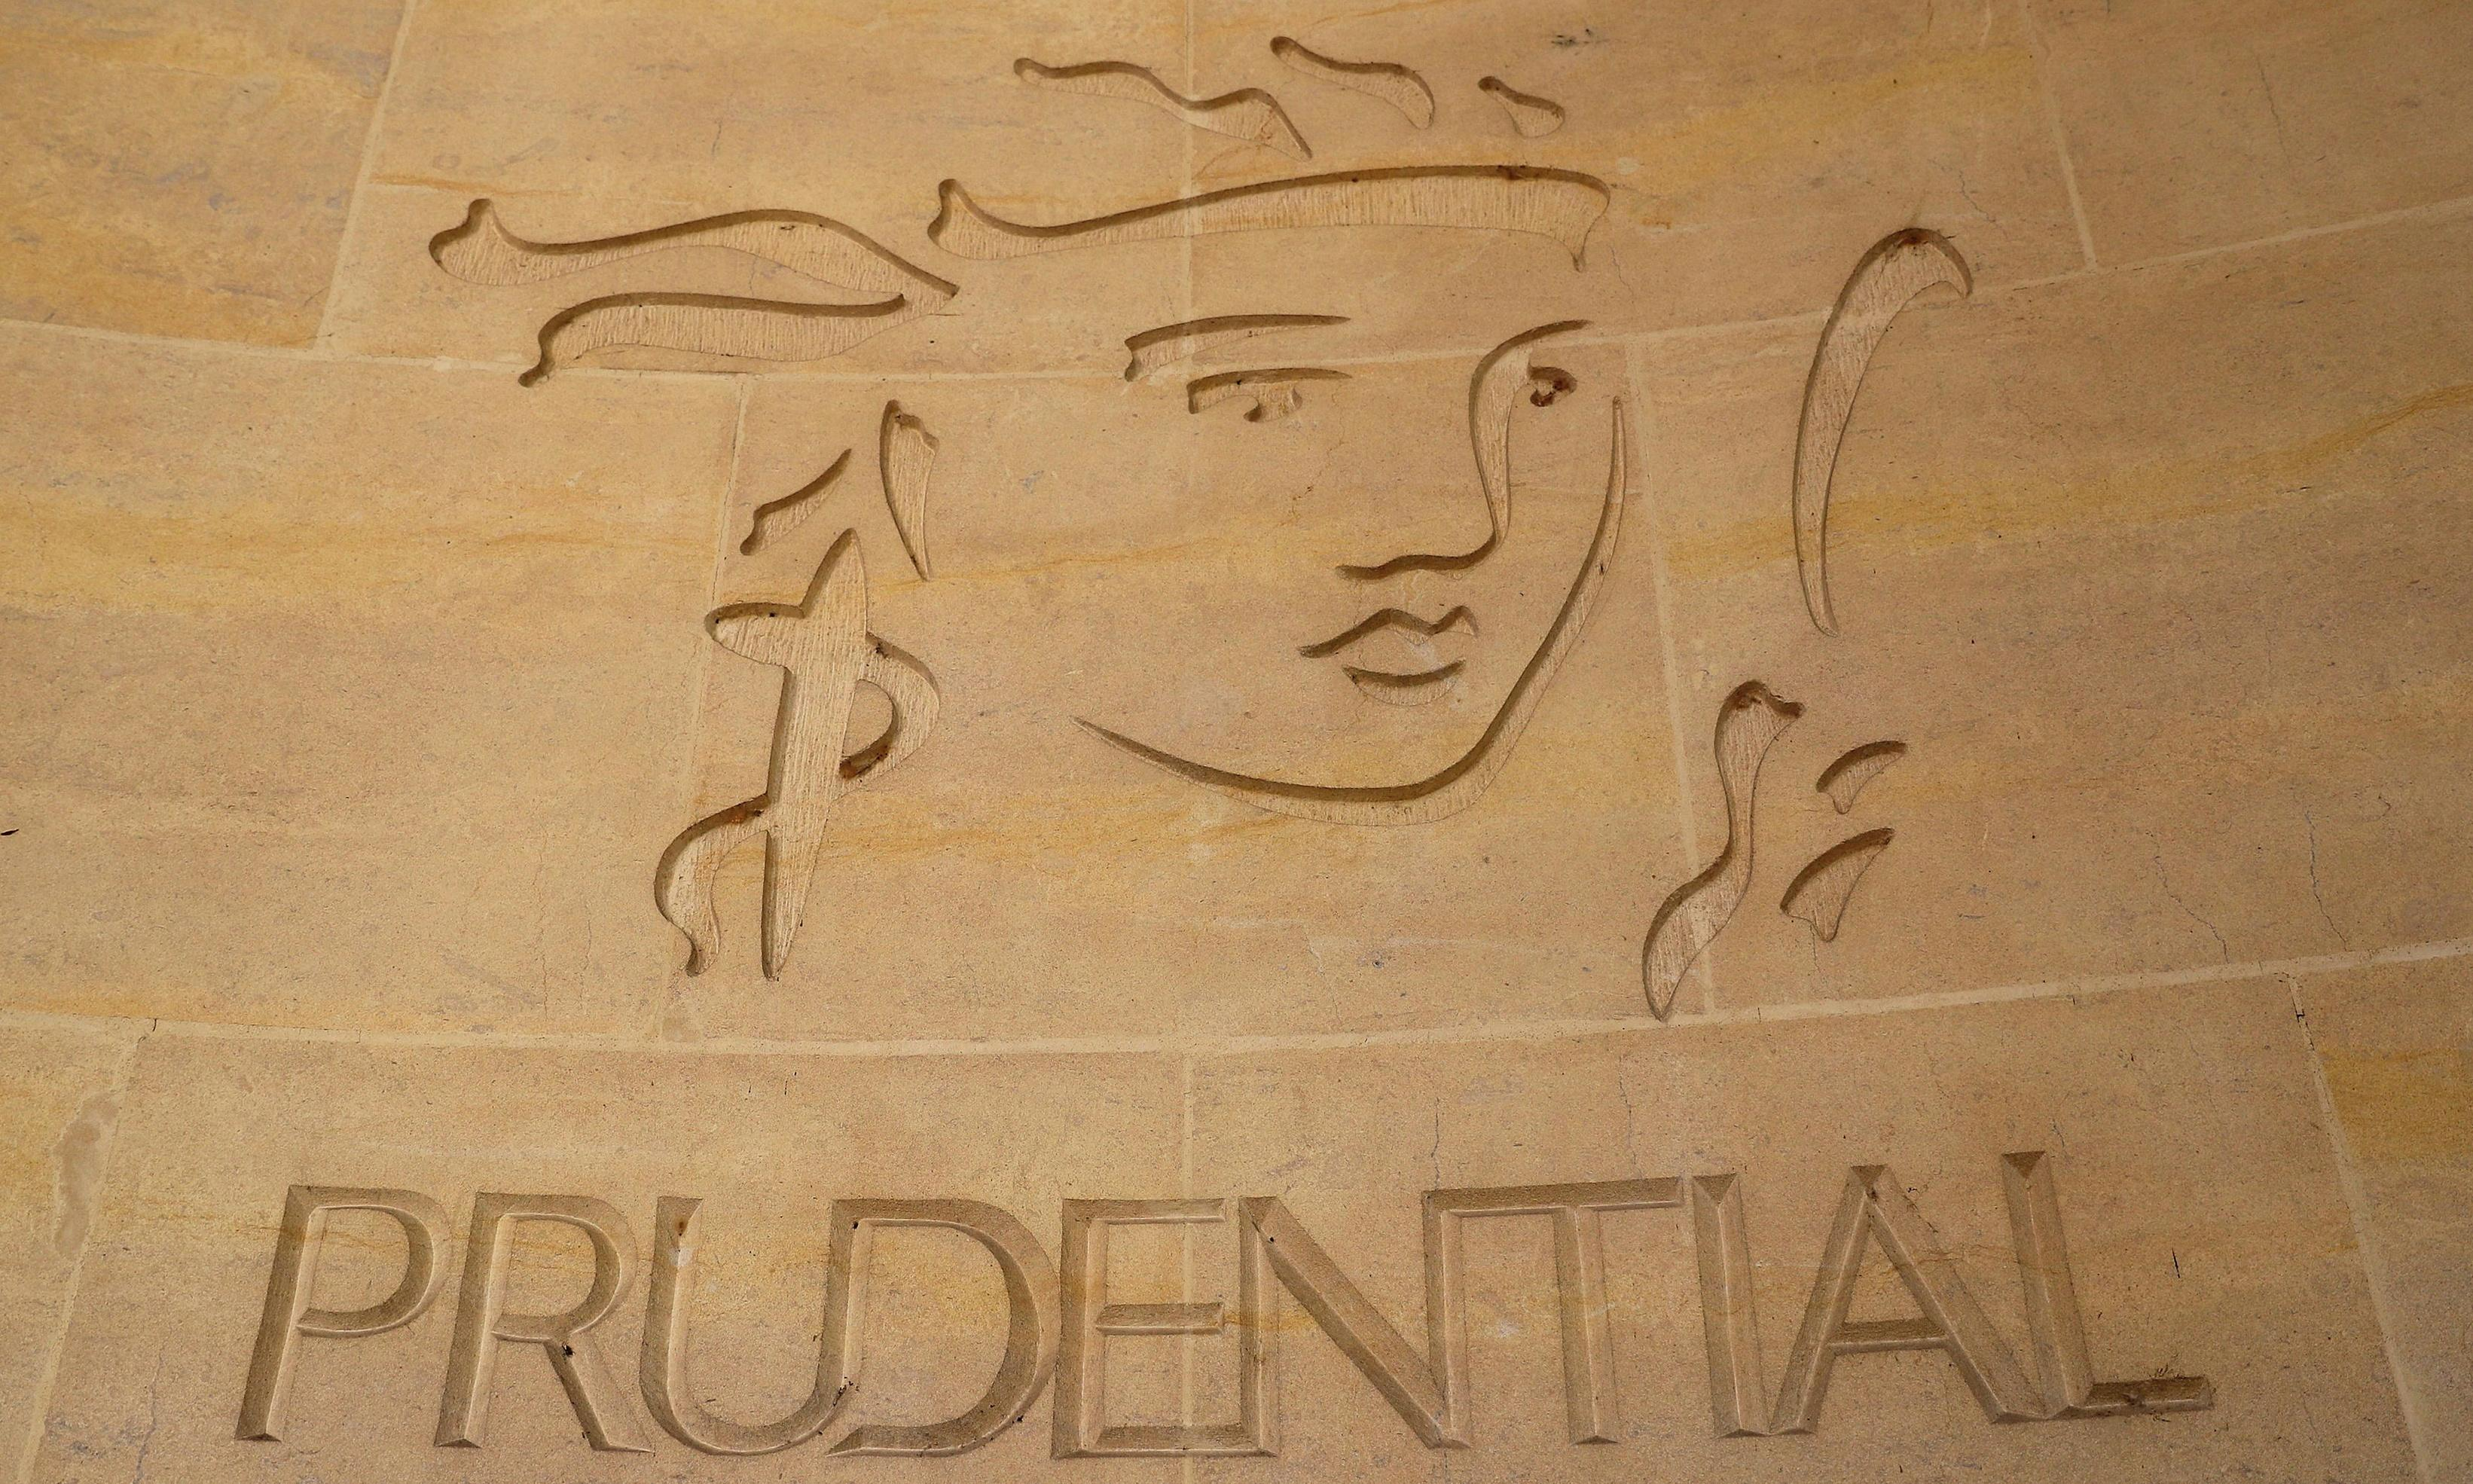 US hedge fund calls for Prudential breakup as it takes near-$2bn stake